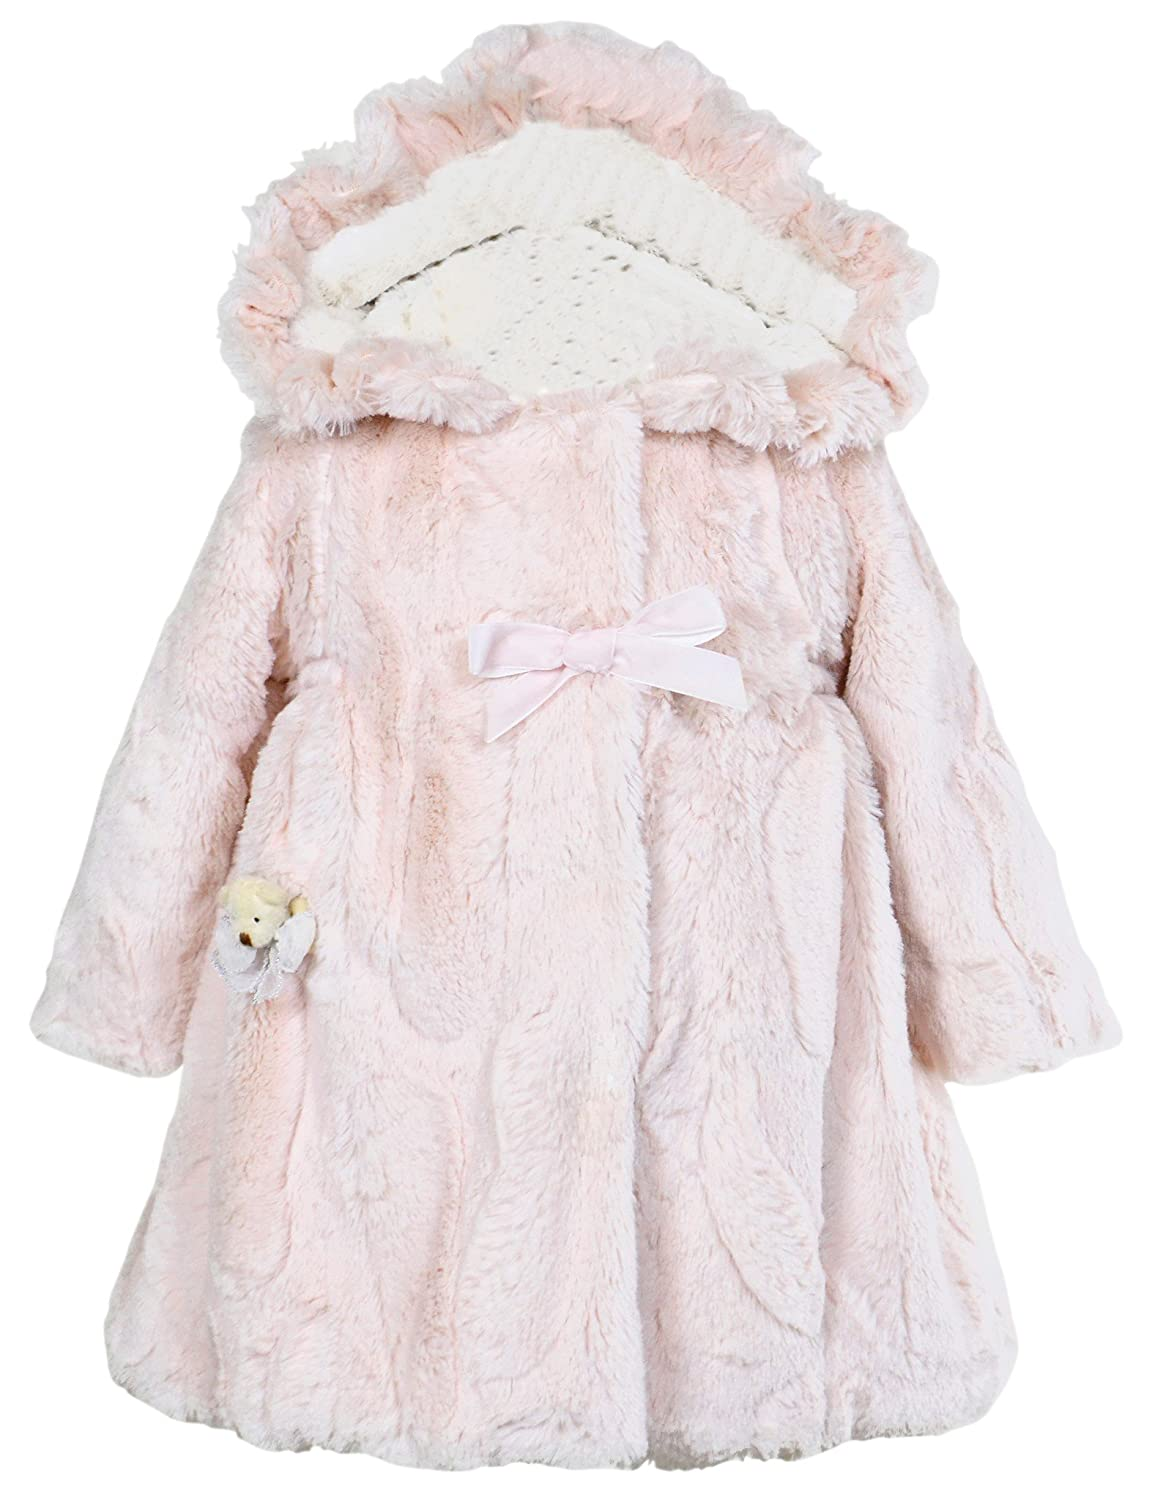 Amazon.com: Widgeon Little Girls' Hooded Big Bow Coat: Clothing